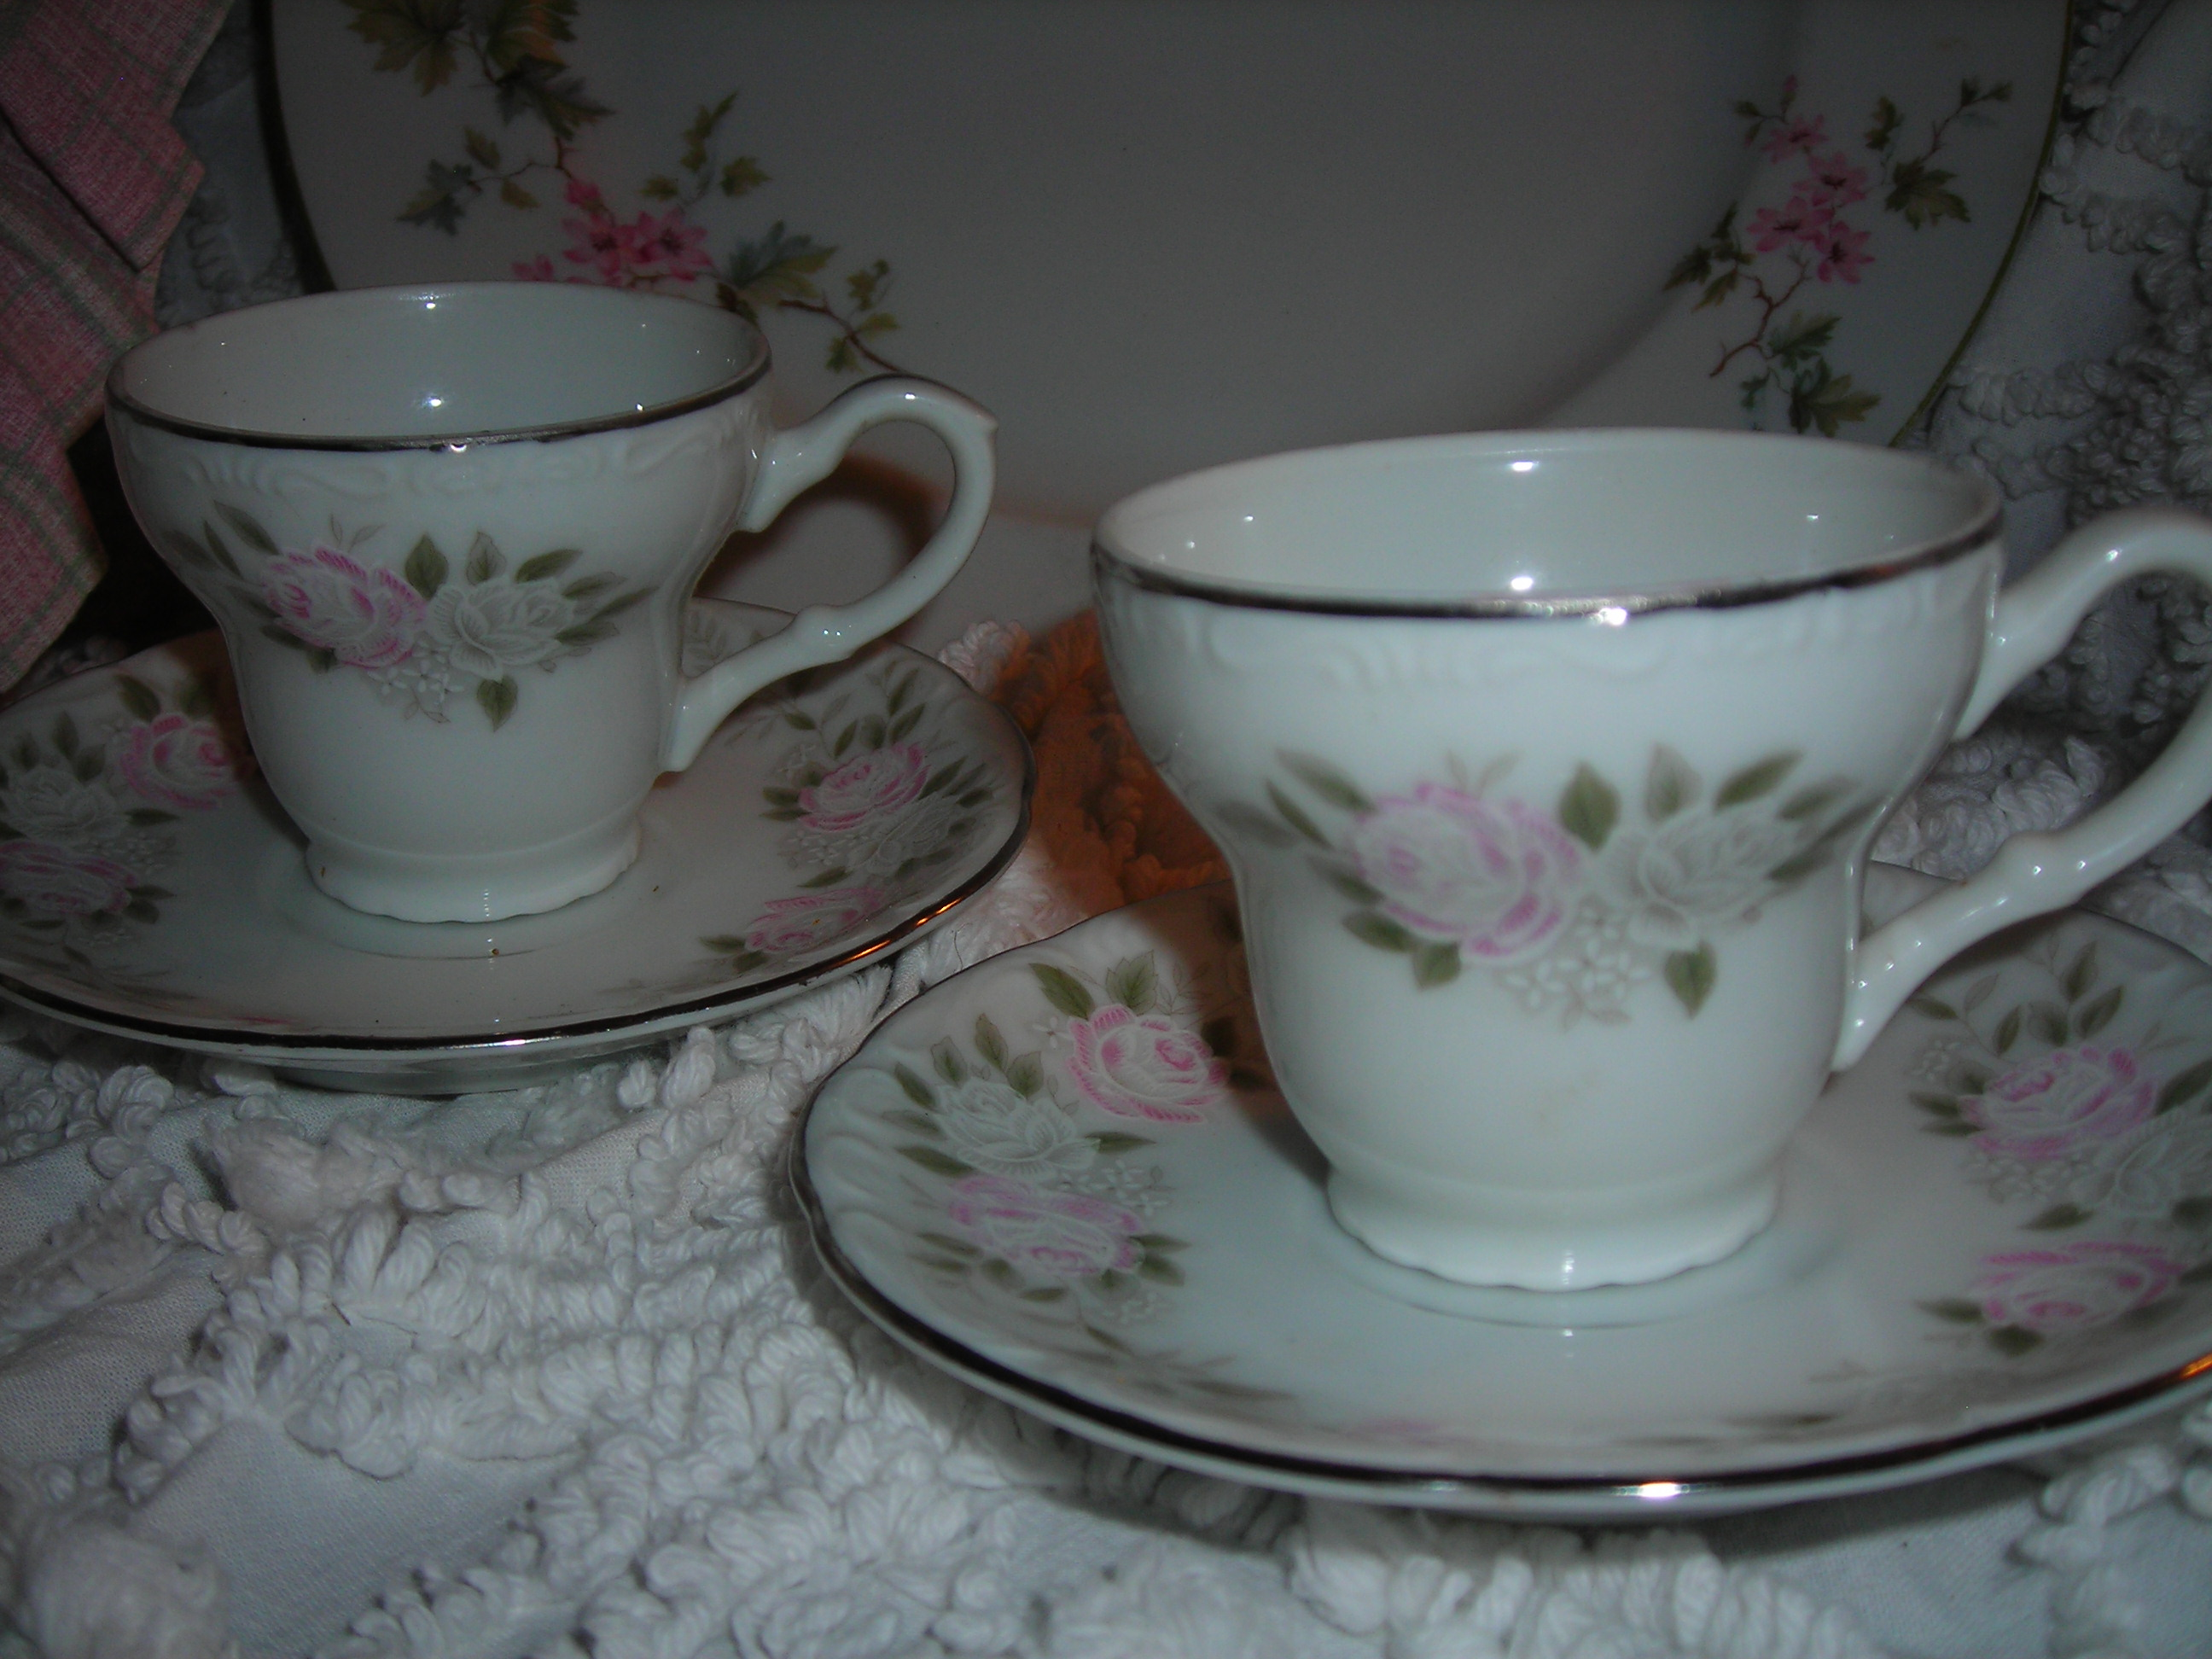 also from that sale, two little cups and saucers. v. dainty and feminine